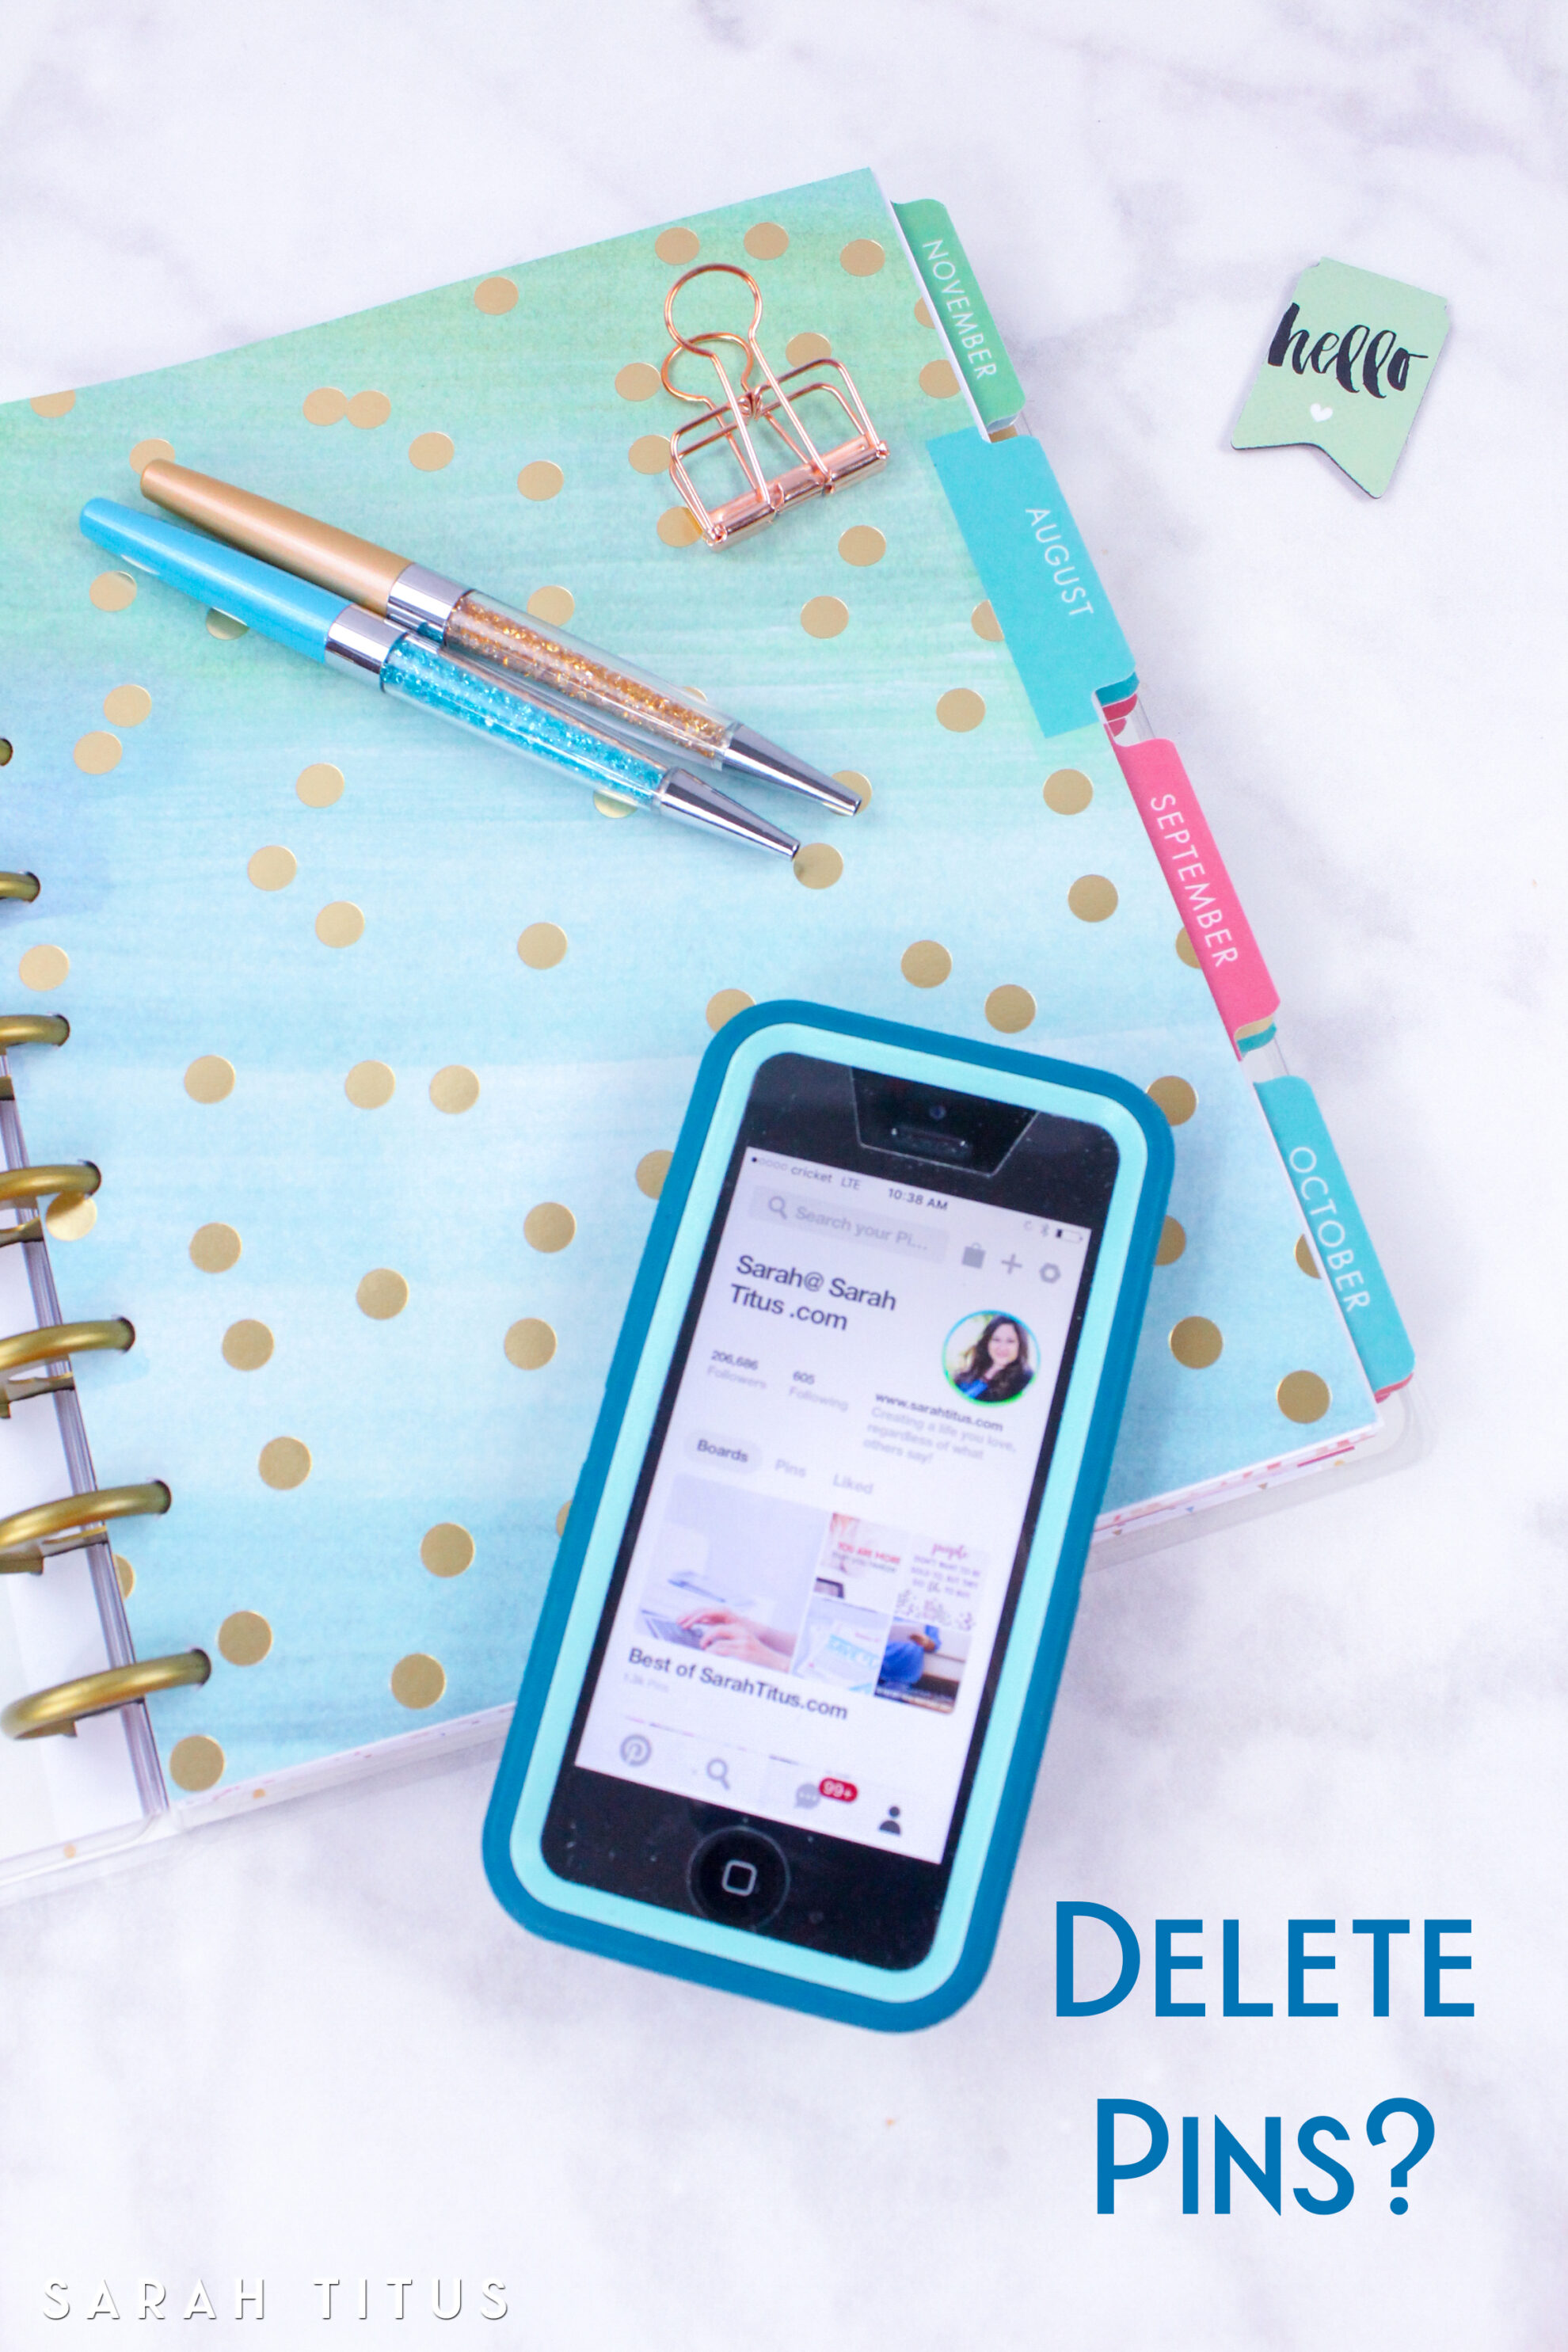 You're not obeying Pinterest's own rules if you're NOT deleting your pins! Here's why you should STILL delete pins on Pinterest.